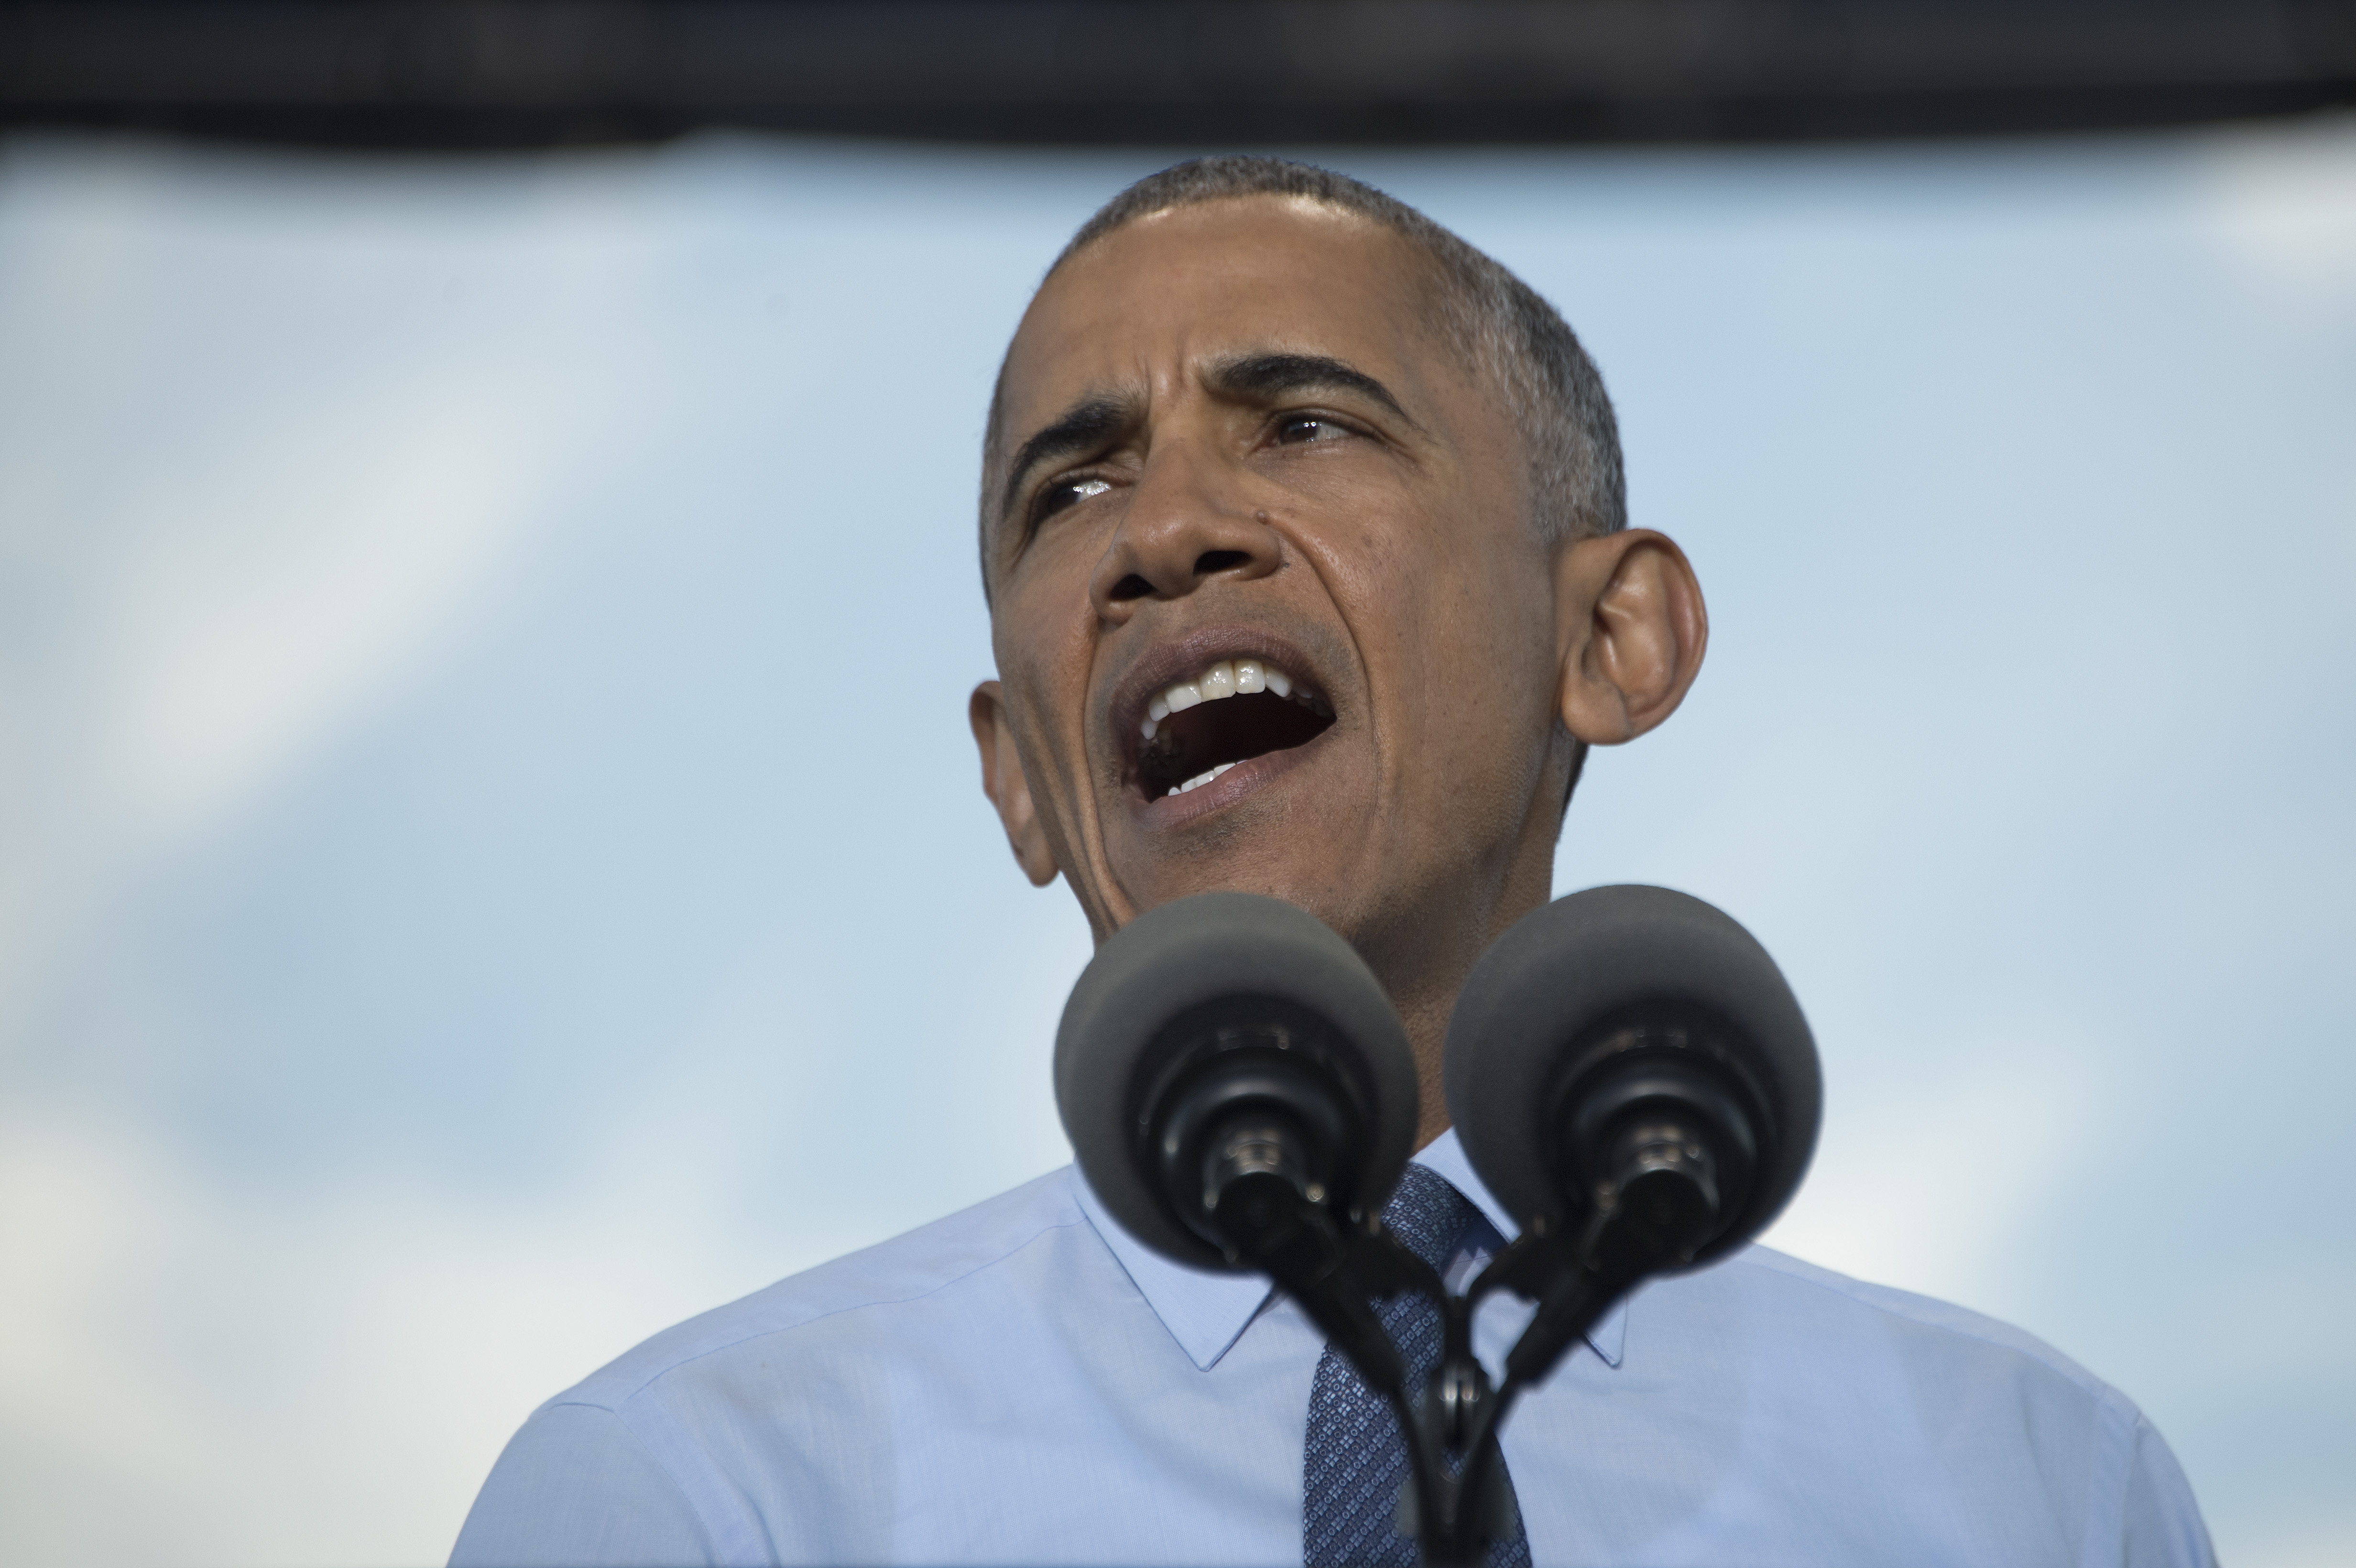 Barack Obama speaks during a Hillary for America campaign event in Greensboro, N.C., on Oct. 11, 2016.